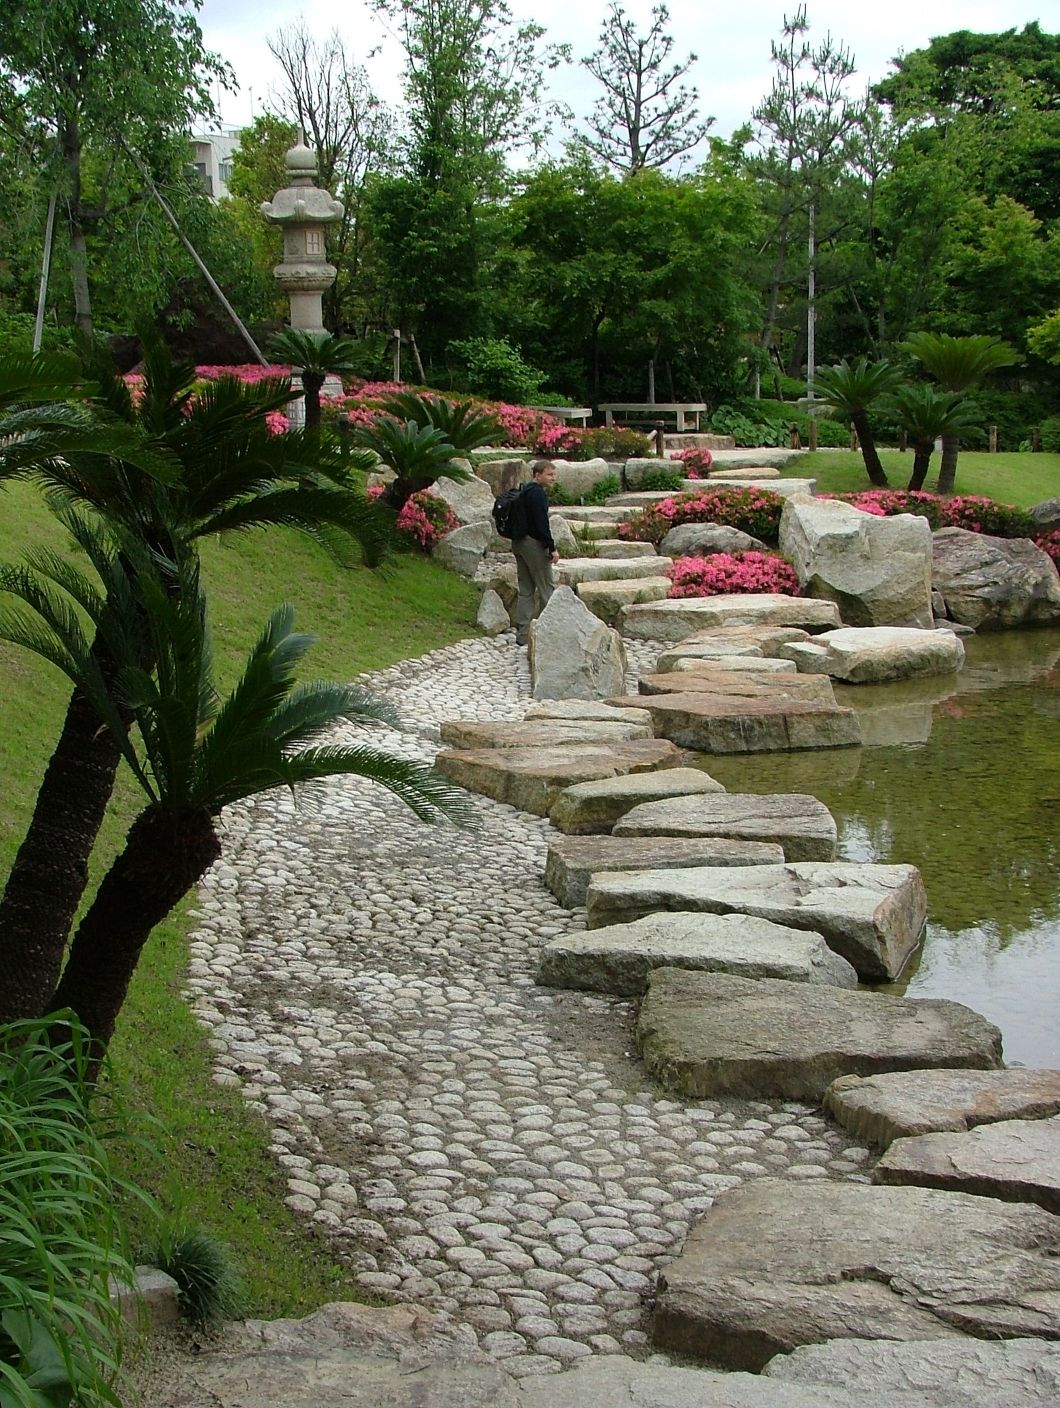 This Is A Path Inside Tokugawaen Or The Tokugawa Gardens One Of My Favorite Jp Gardens Tokugawaen Is A Japanese Garden Style Japanese Garden Dream Garden